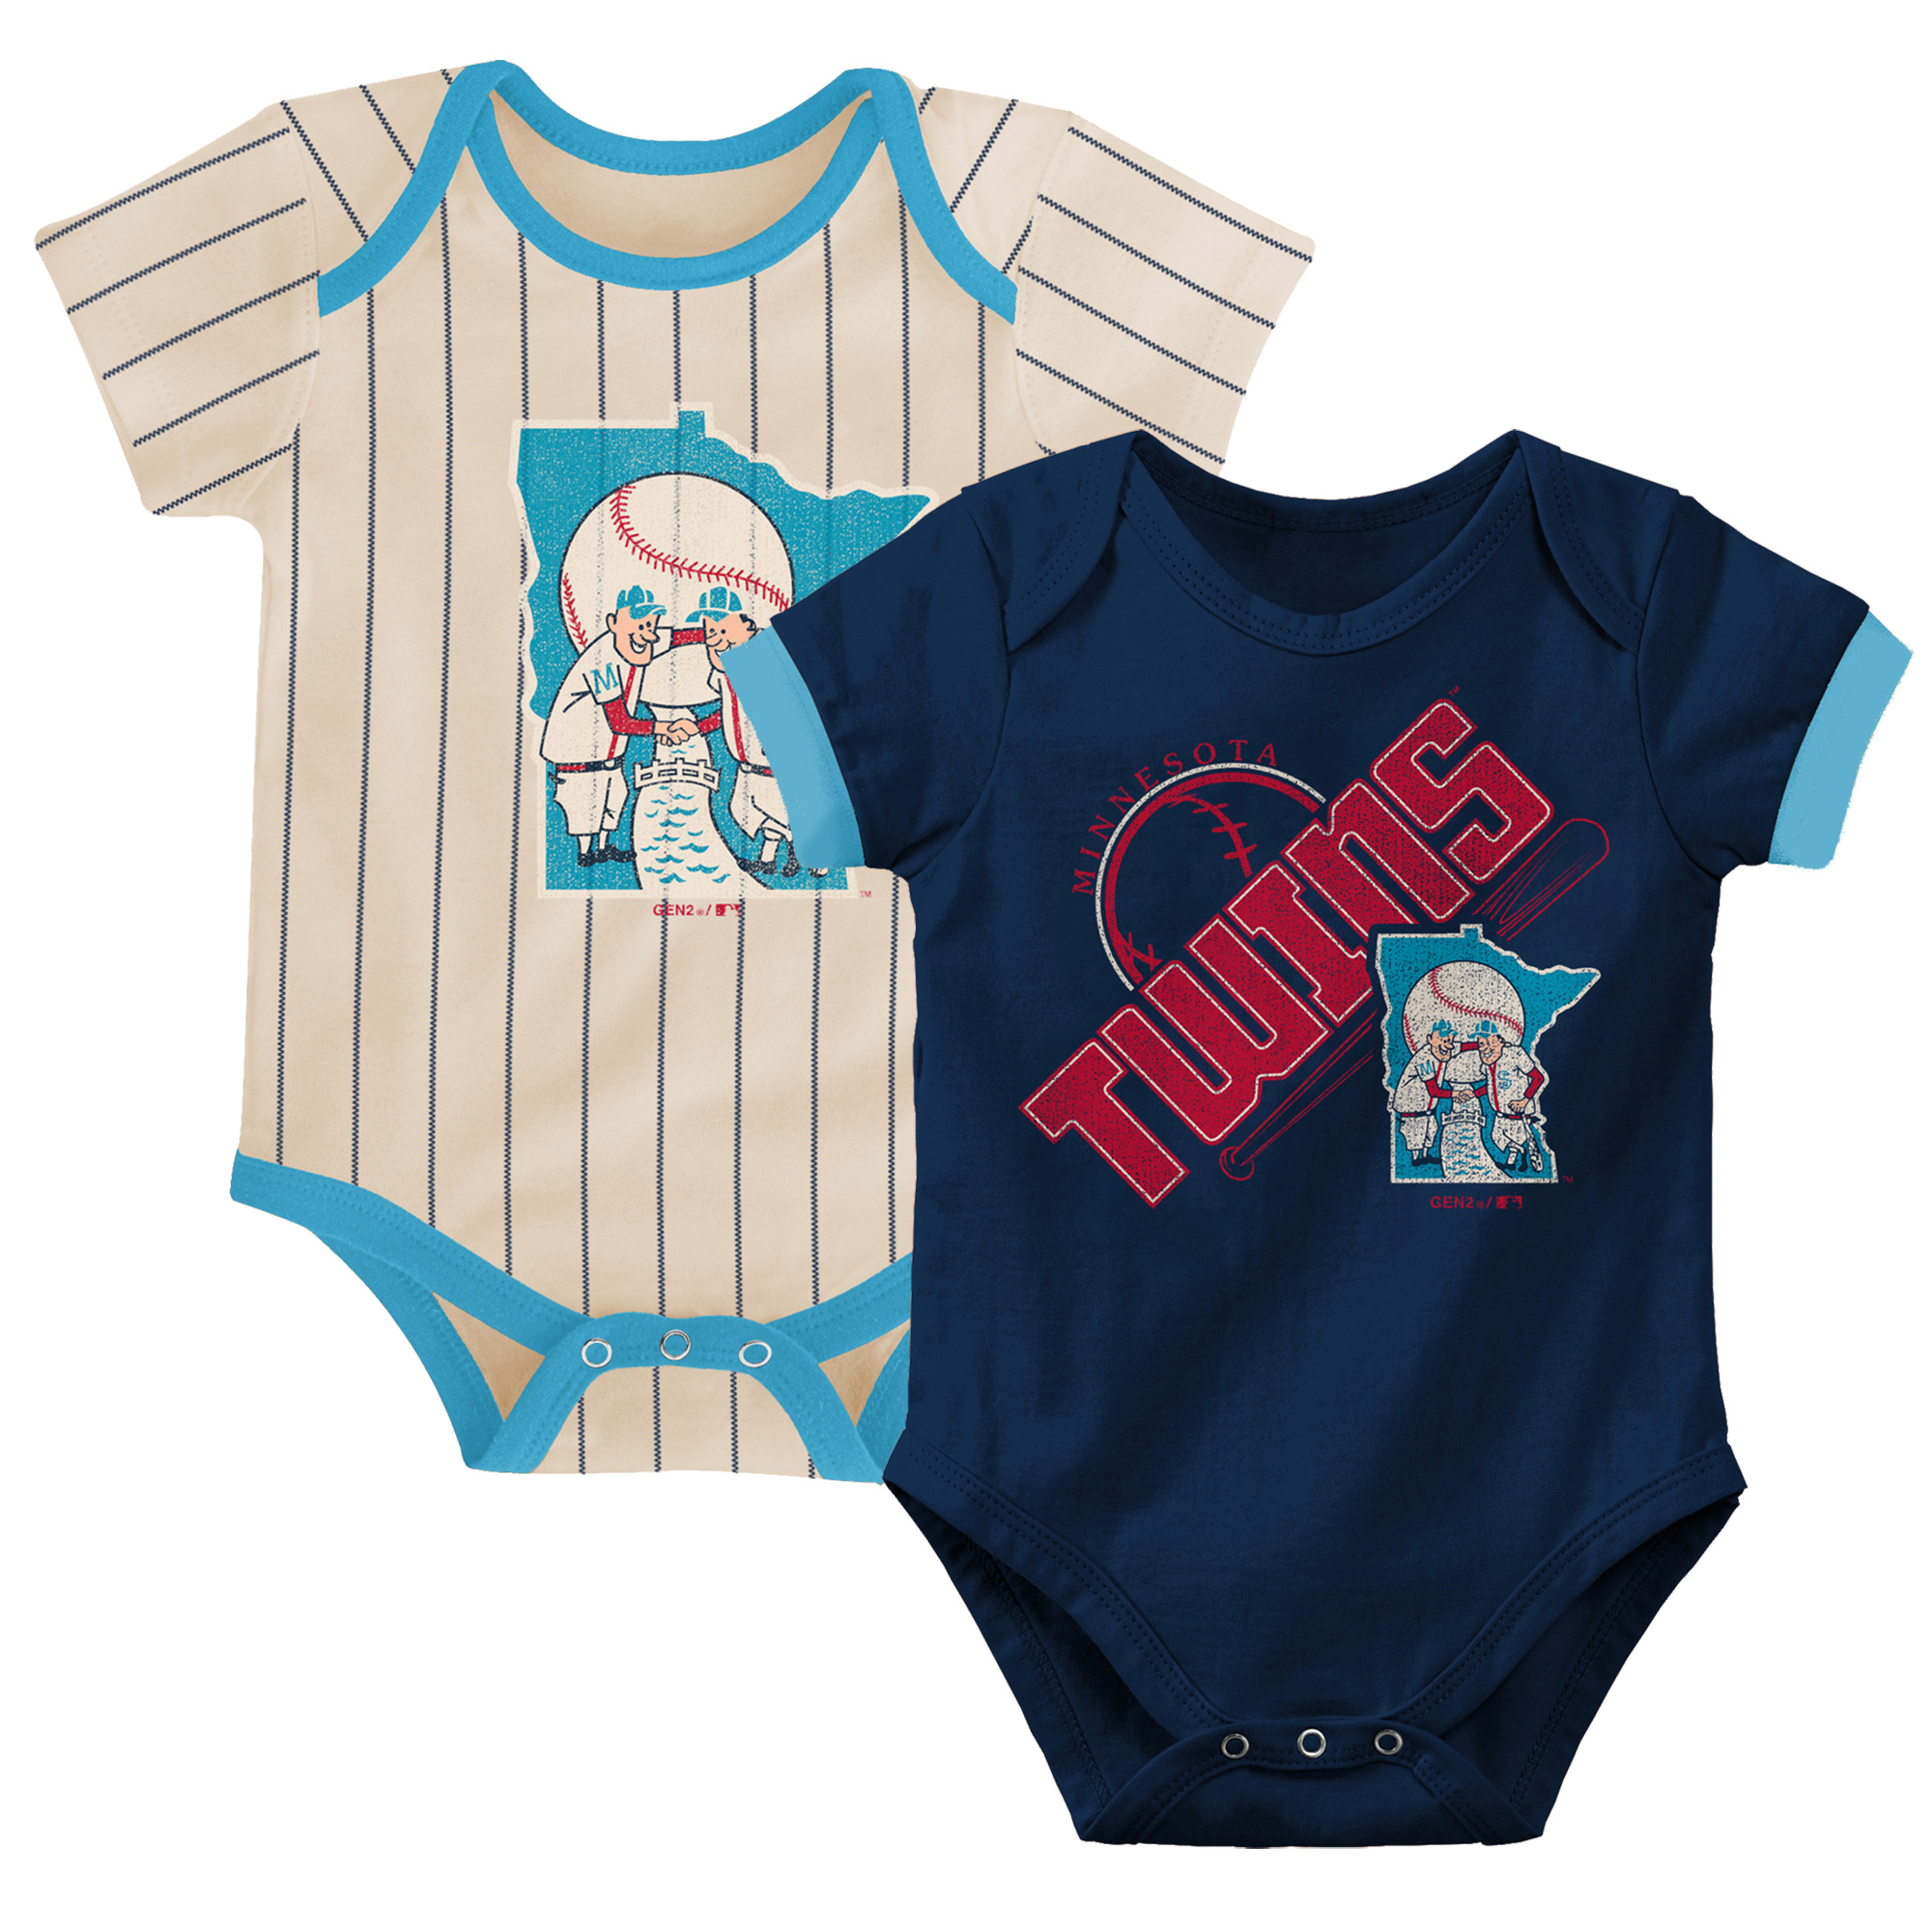 Minnesota Twins Newborn & Infant Cooperstown Collection Groovy Game Two-Pack Bodysuit Set - Navy/Tan